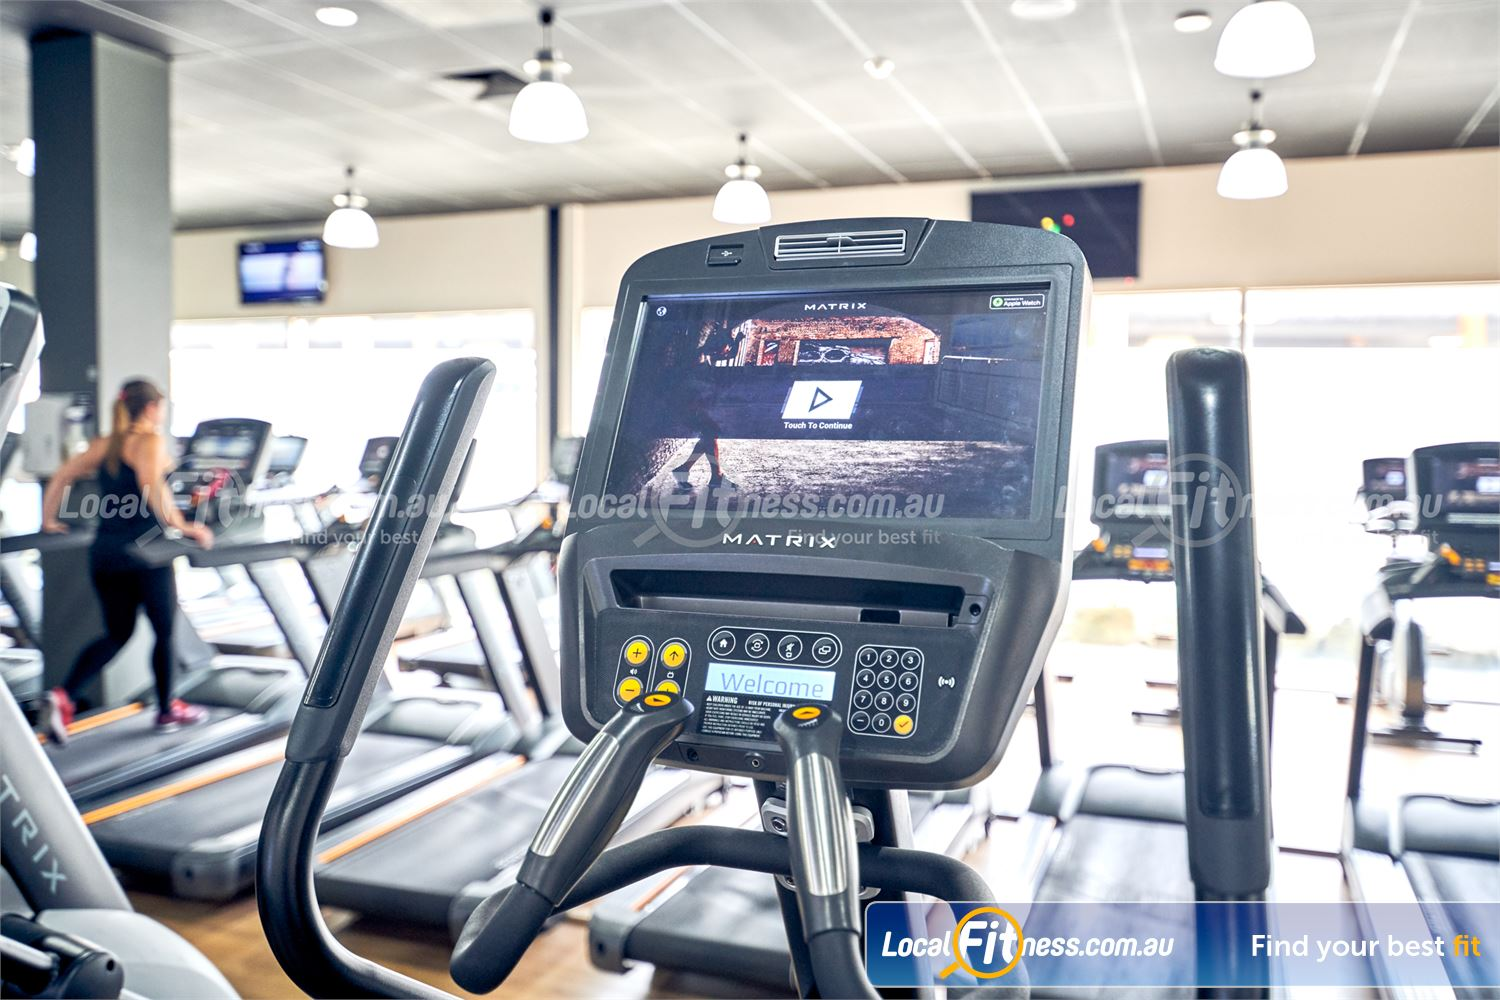 Goodlife Health Clubs Knox City Near Scoresby State of the art MATRIX cardio with personal entertainment screens.